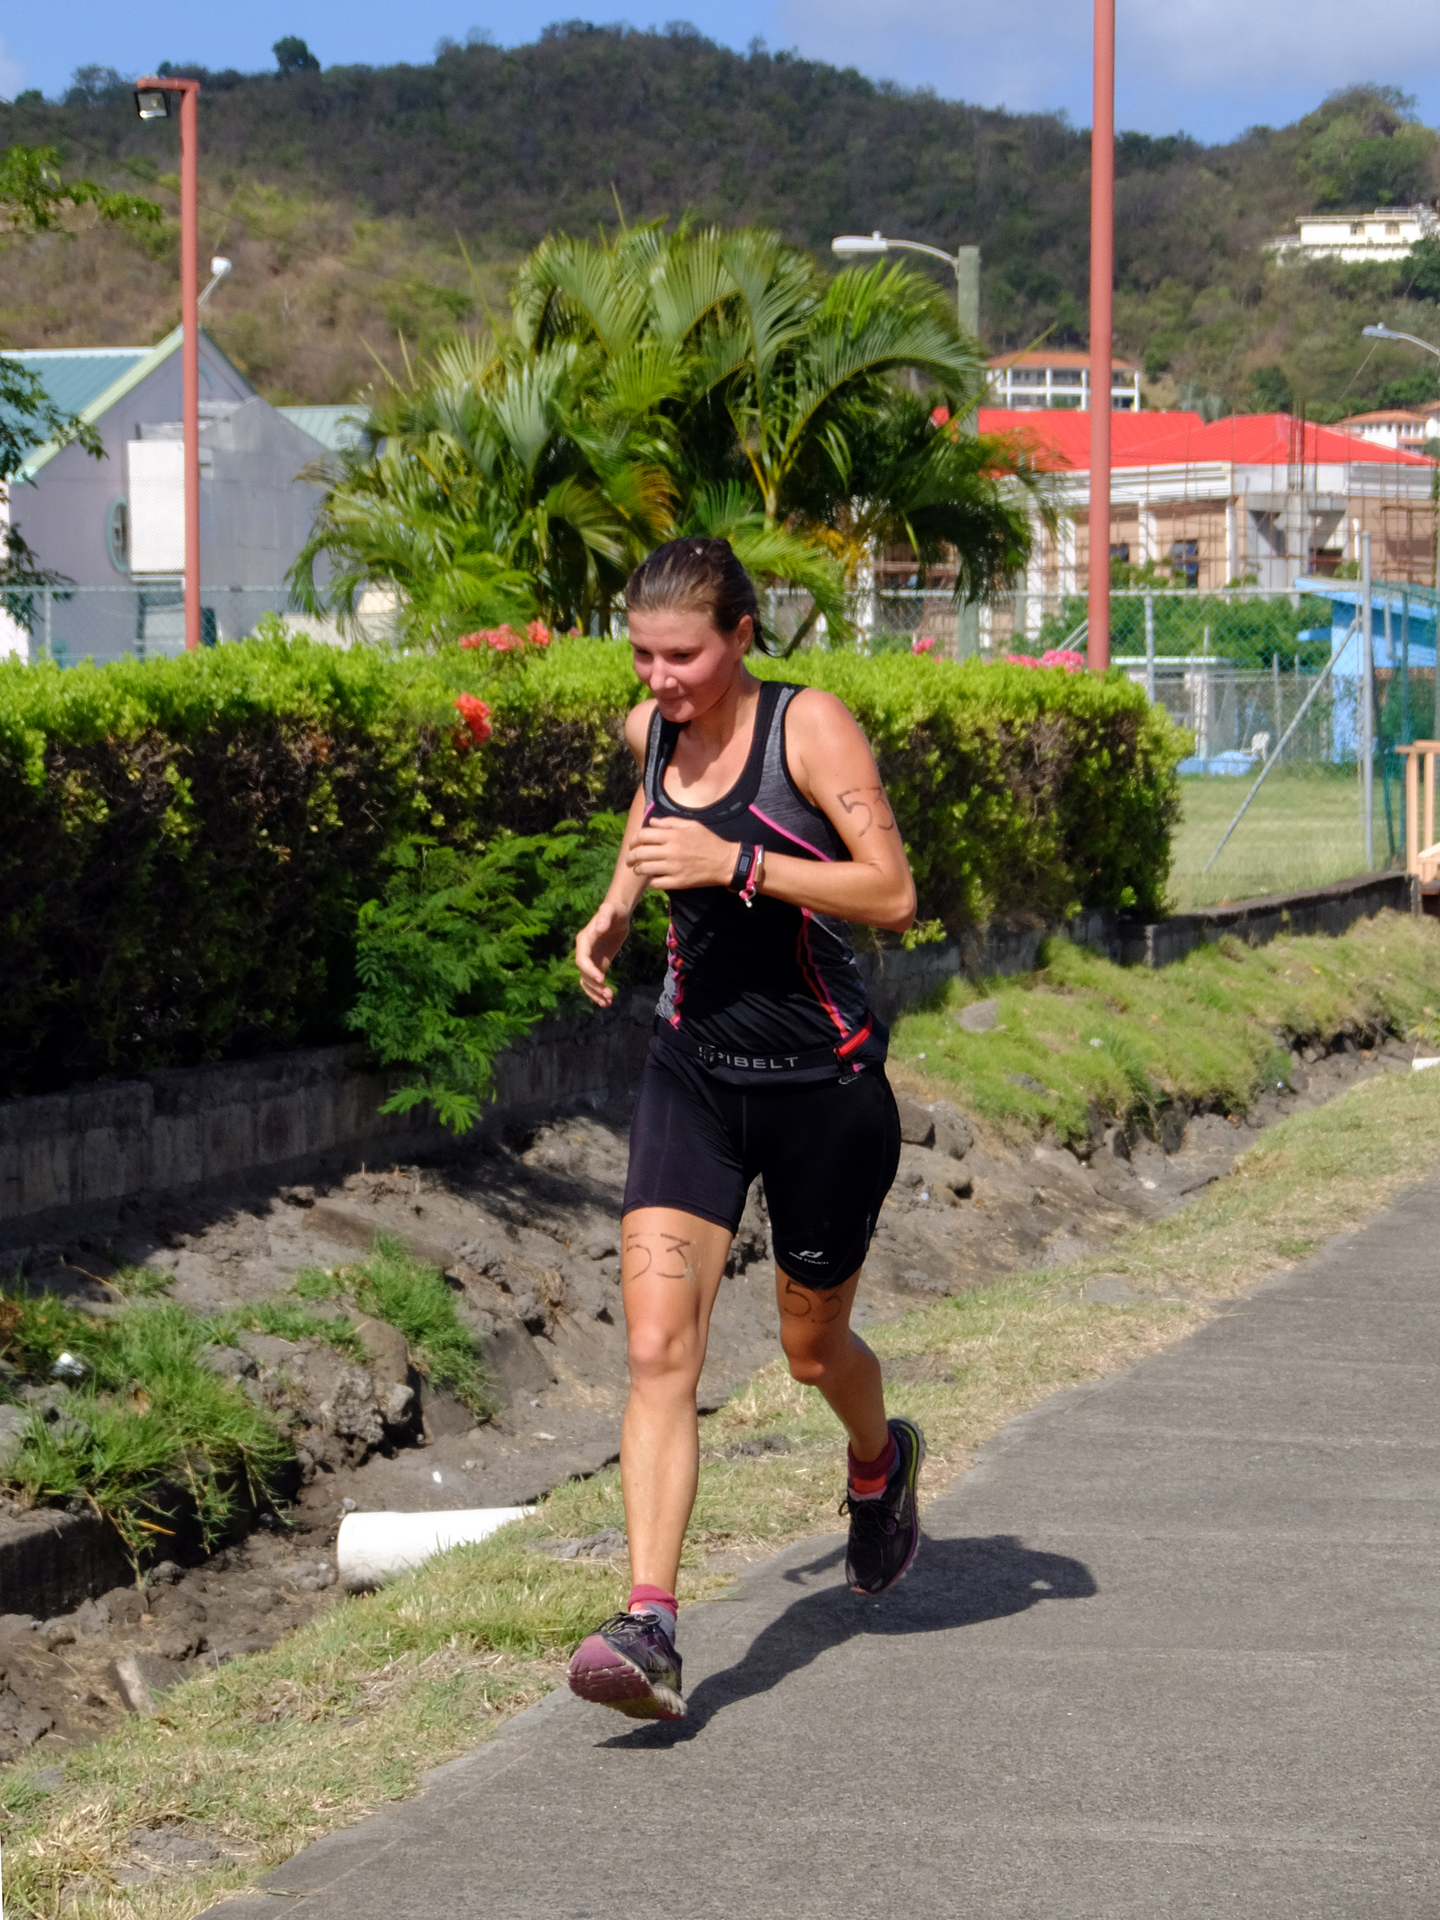 Grenada Hash House Harriers Triathlon